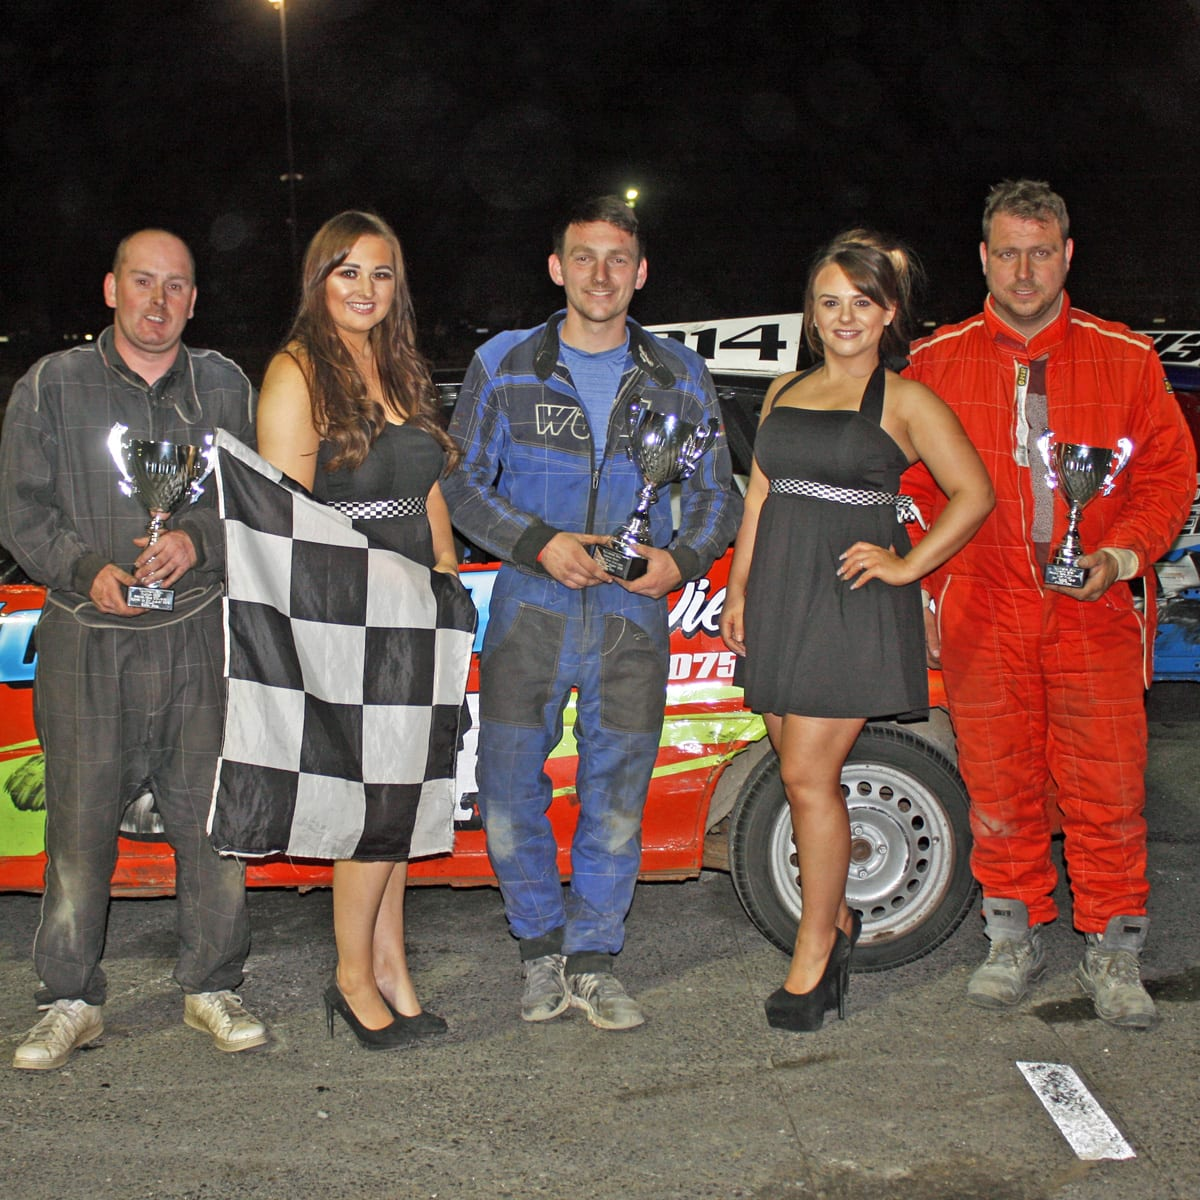 Joshua McMullan (centre) won the Thunder Rod final at Tullyroan Oval on Saturday night with James Goldie (left) runner up and Ryan Campbell (right) in third